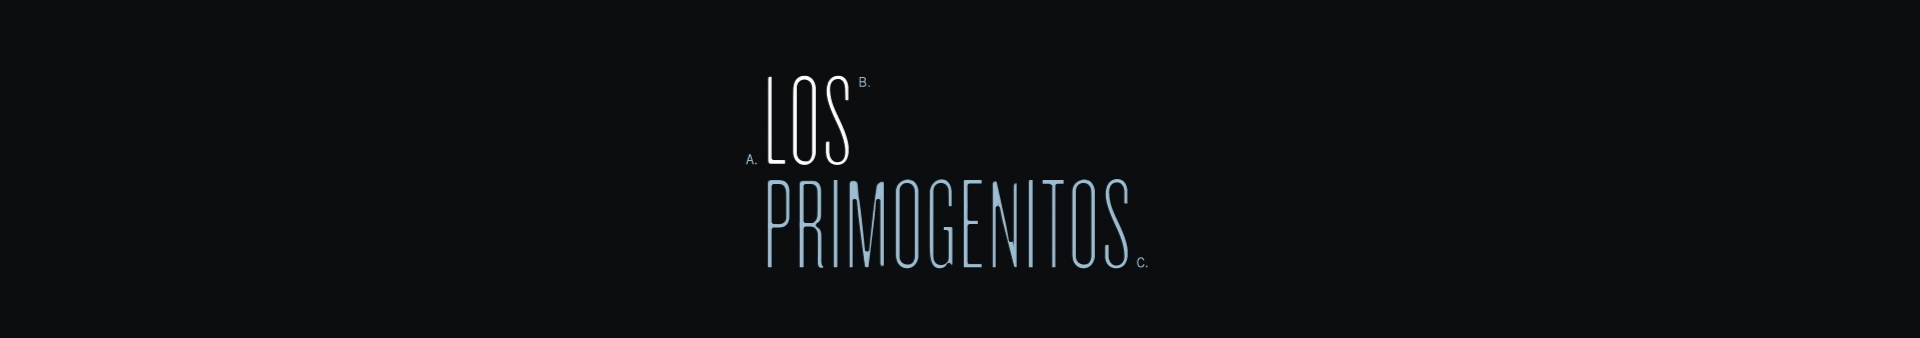 Los Primogenitos - Open Titles